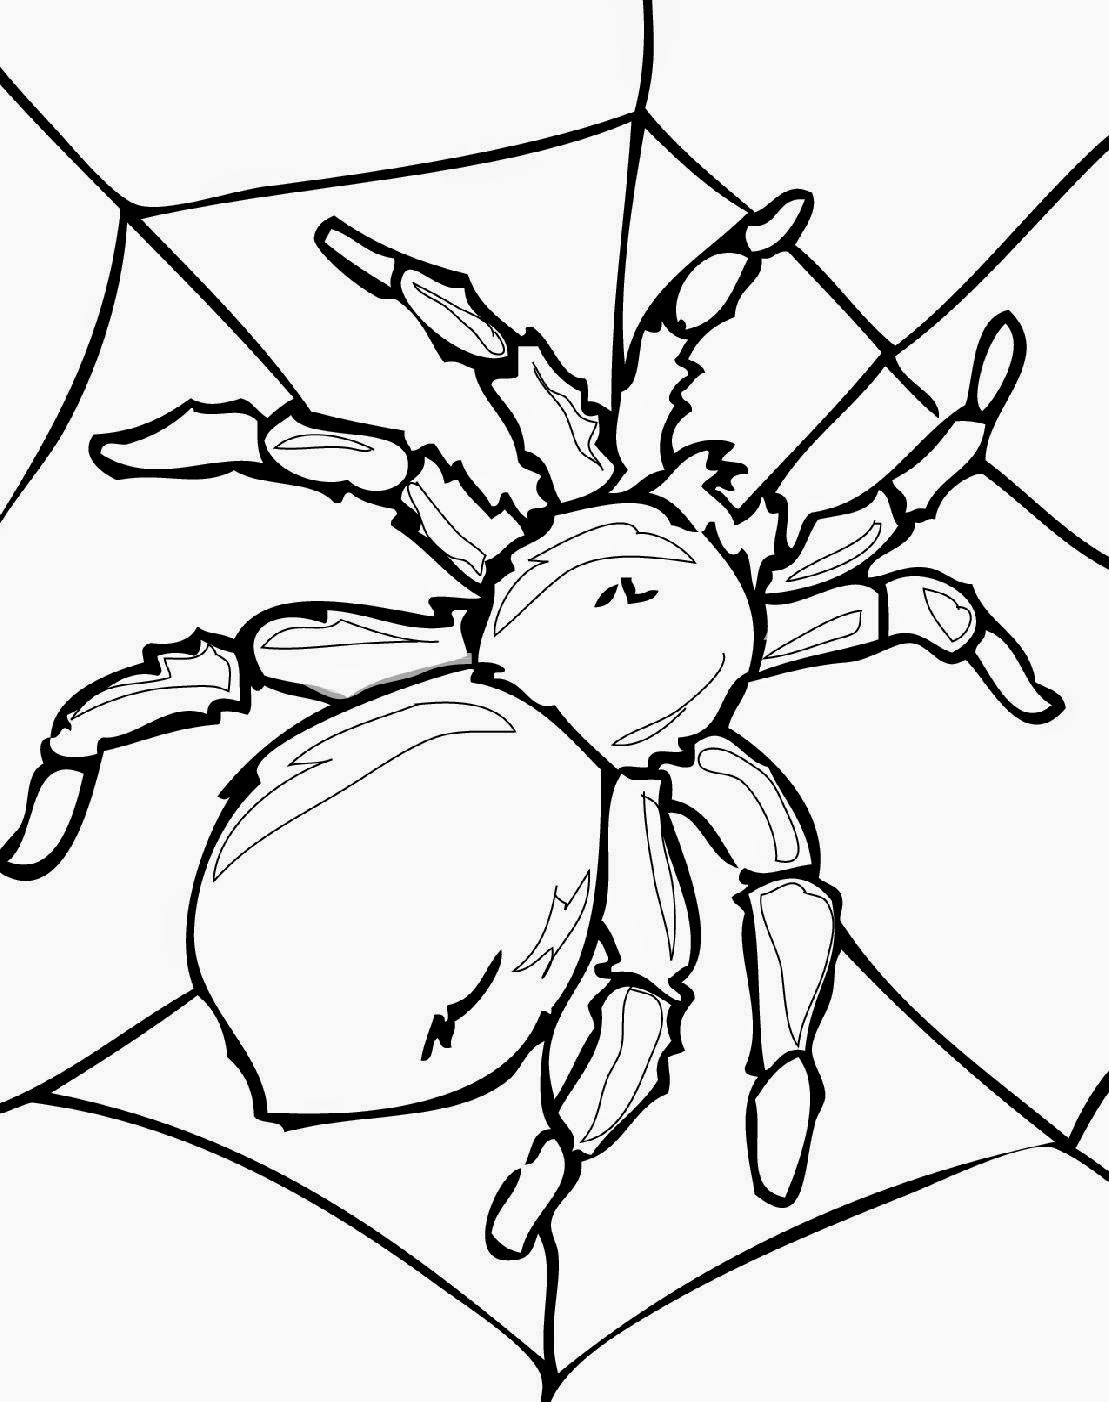 insects coloring sheets printable bug coloring pages for kids cool2bkids insects coloring sheets